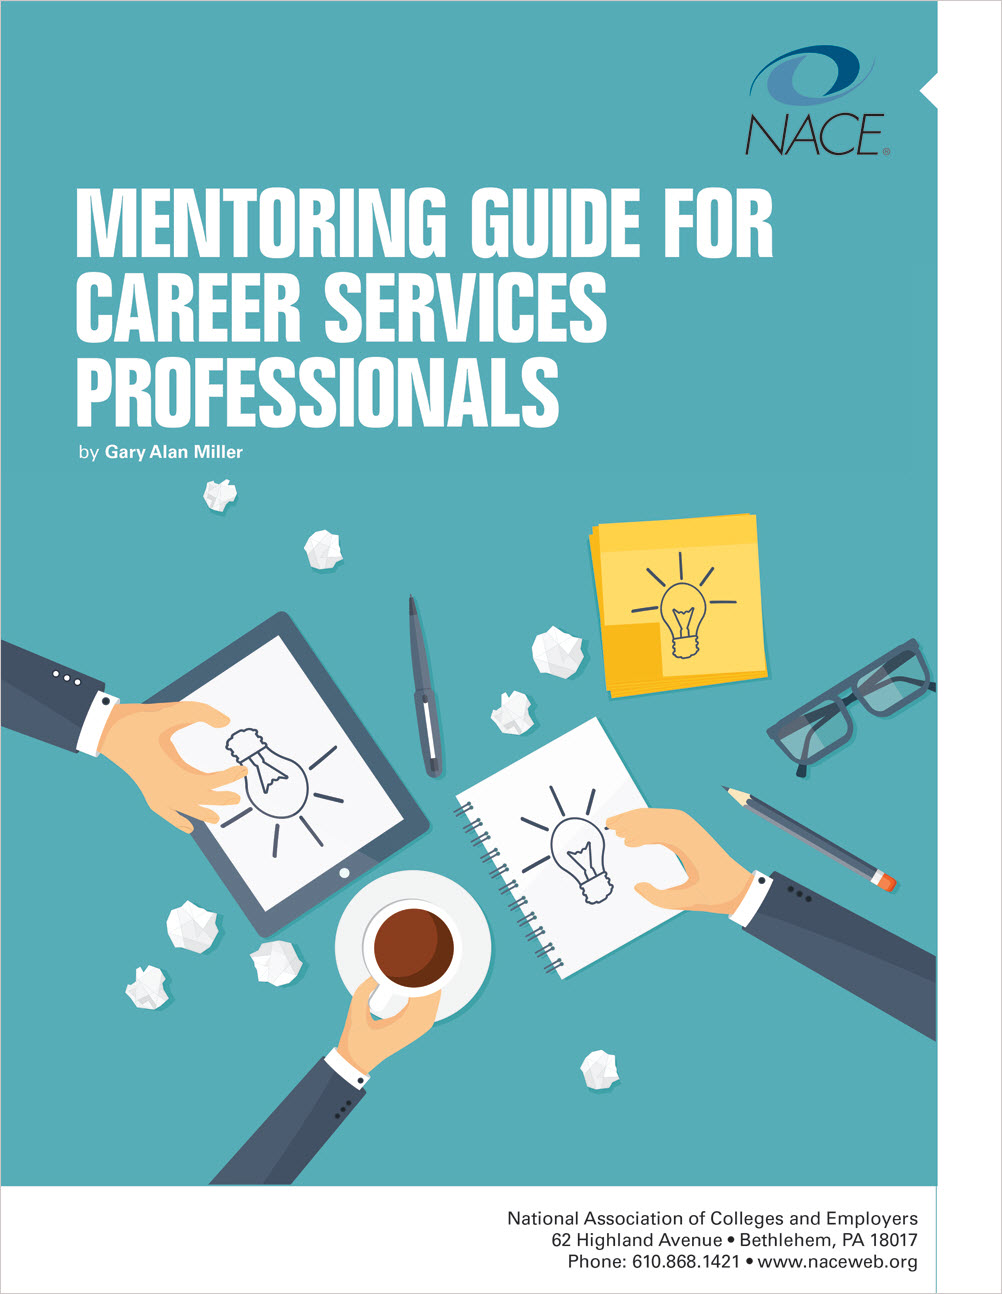 Mentoring Guide for Career Services